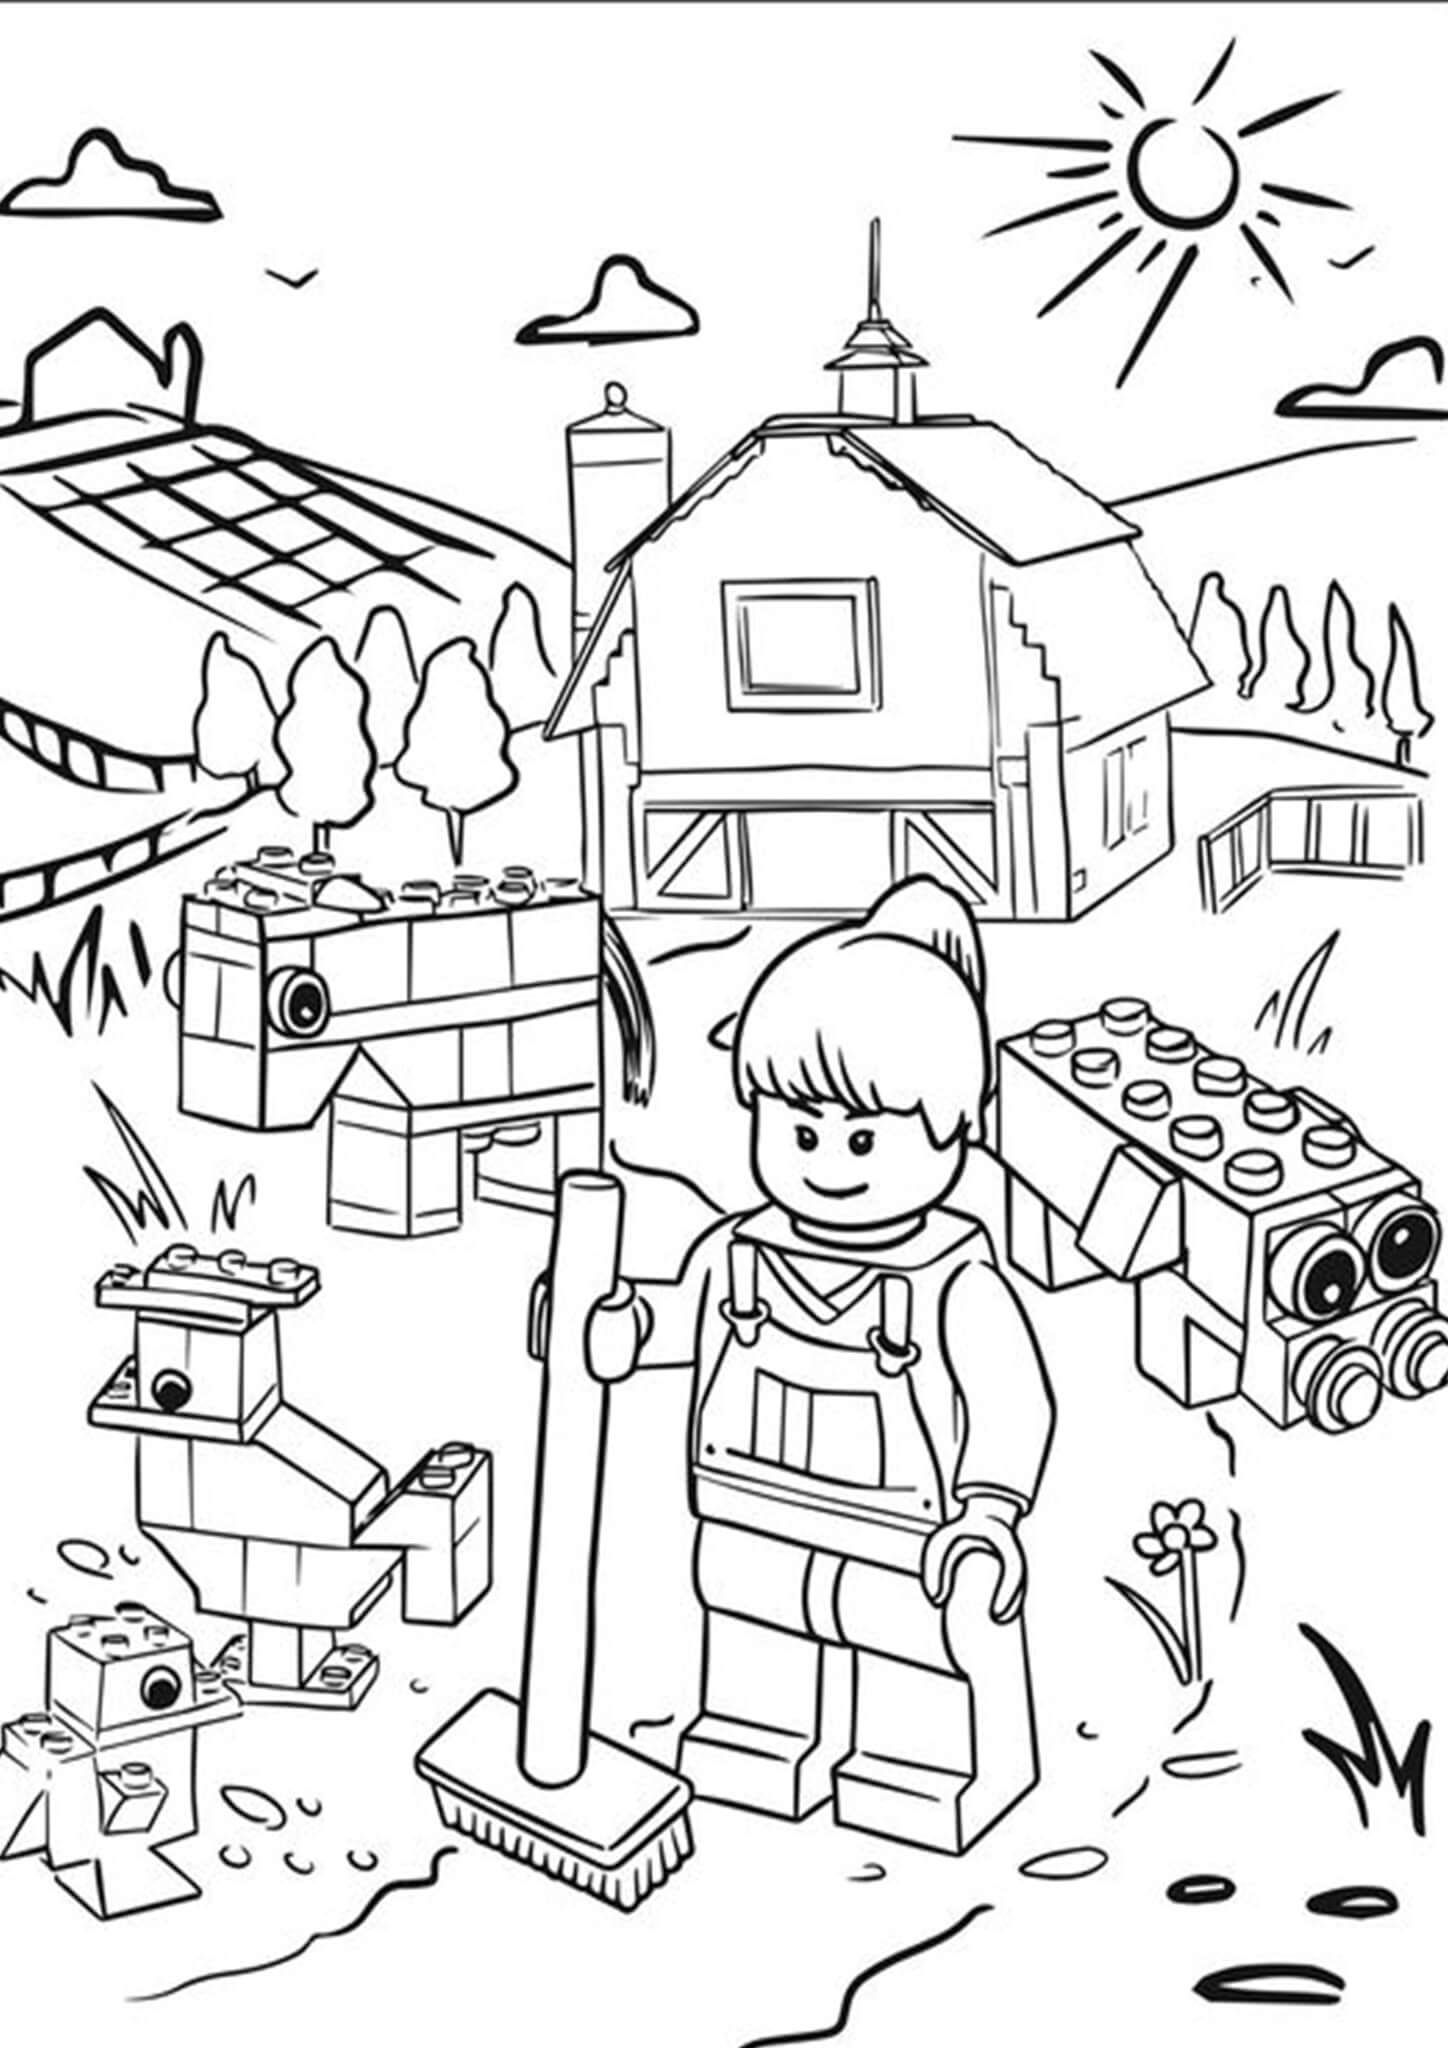 Free Easy To Print Lego Coloring Pages Lego Coloring Lego Coloring Pages Unicorn Coloring Pages